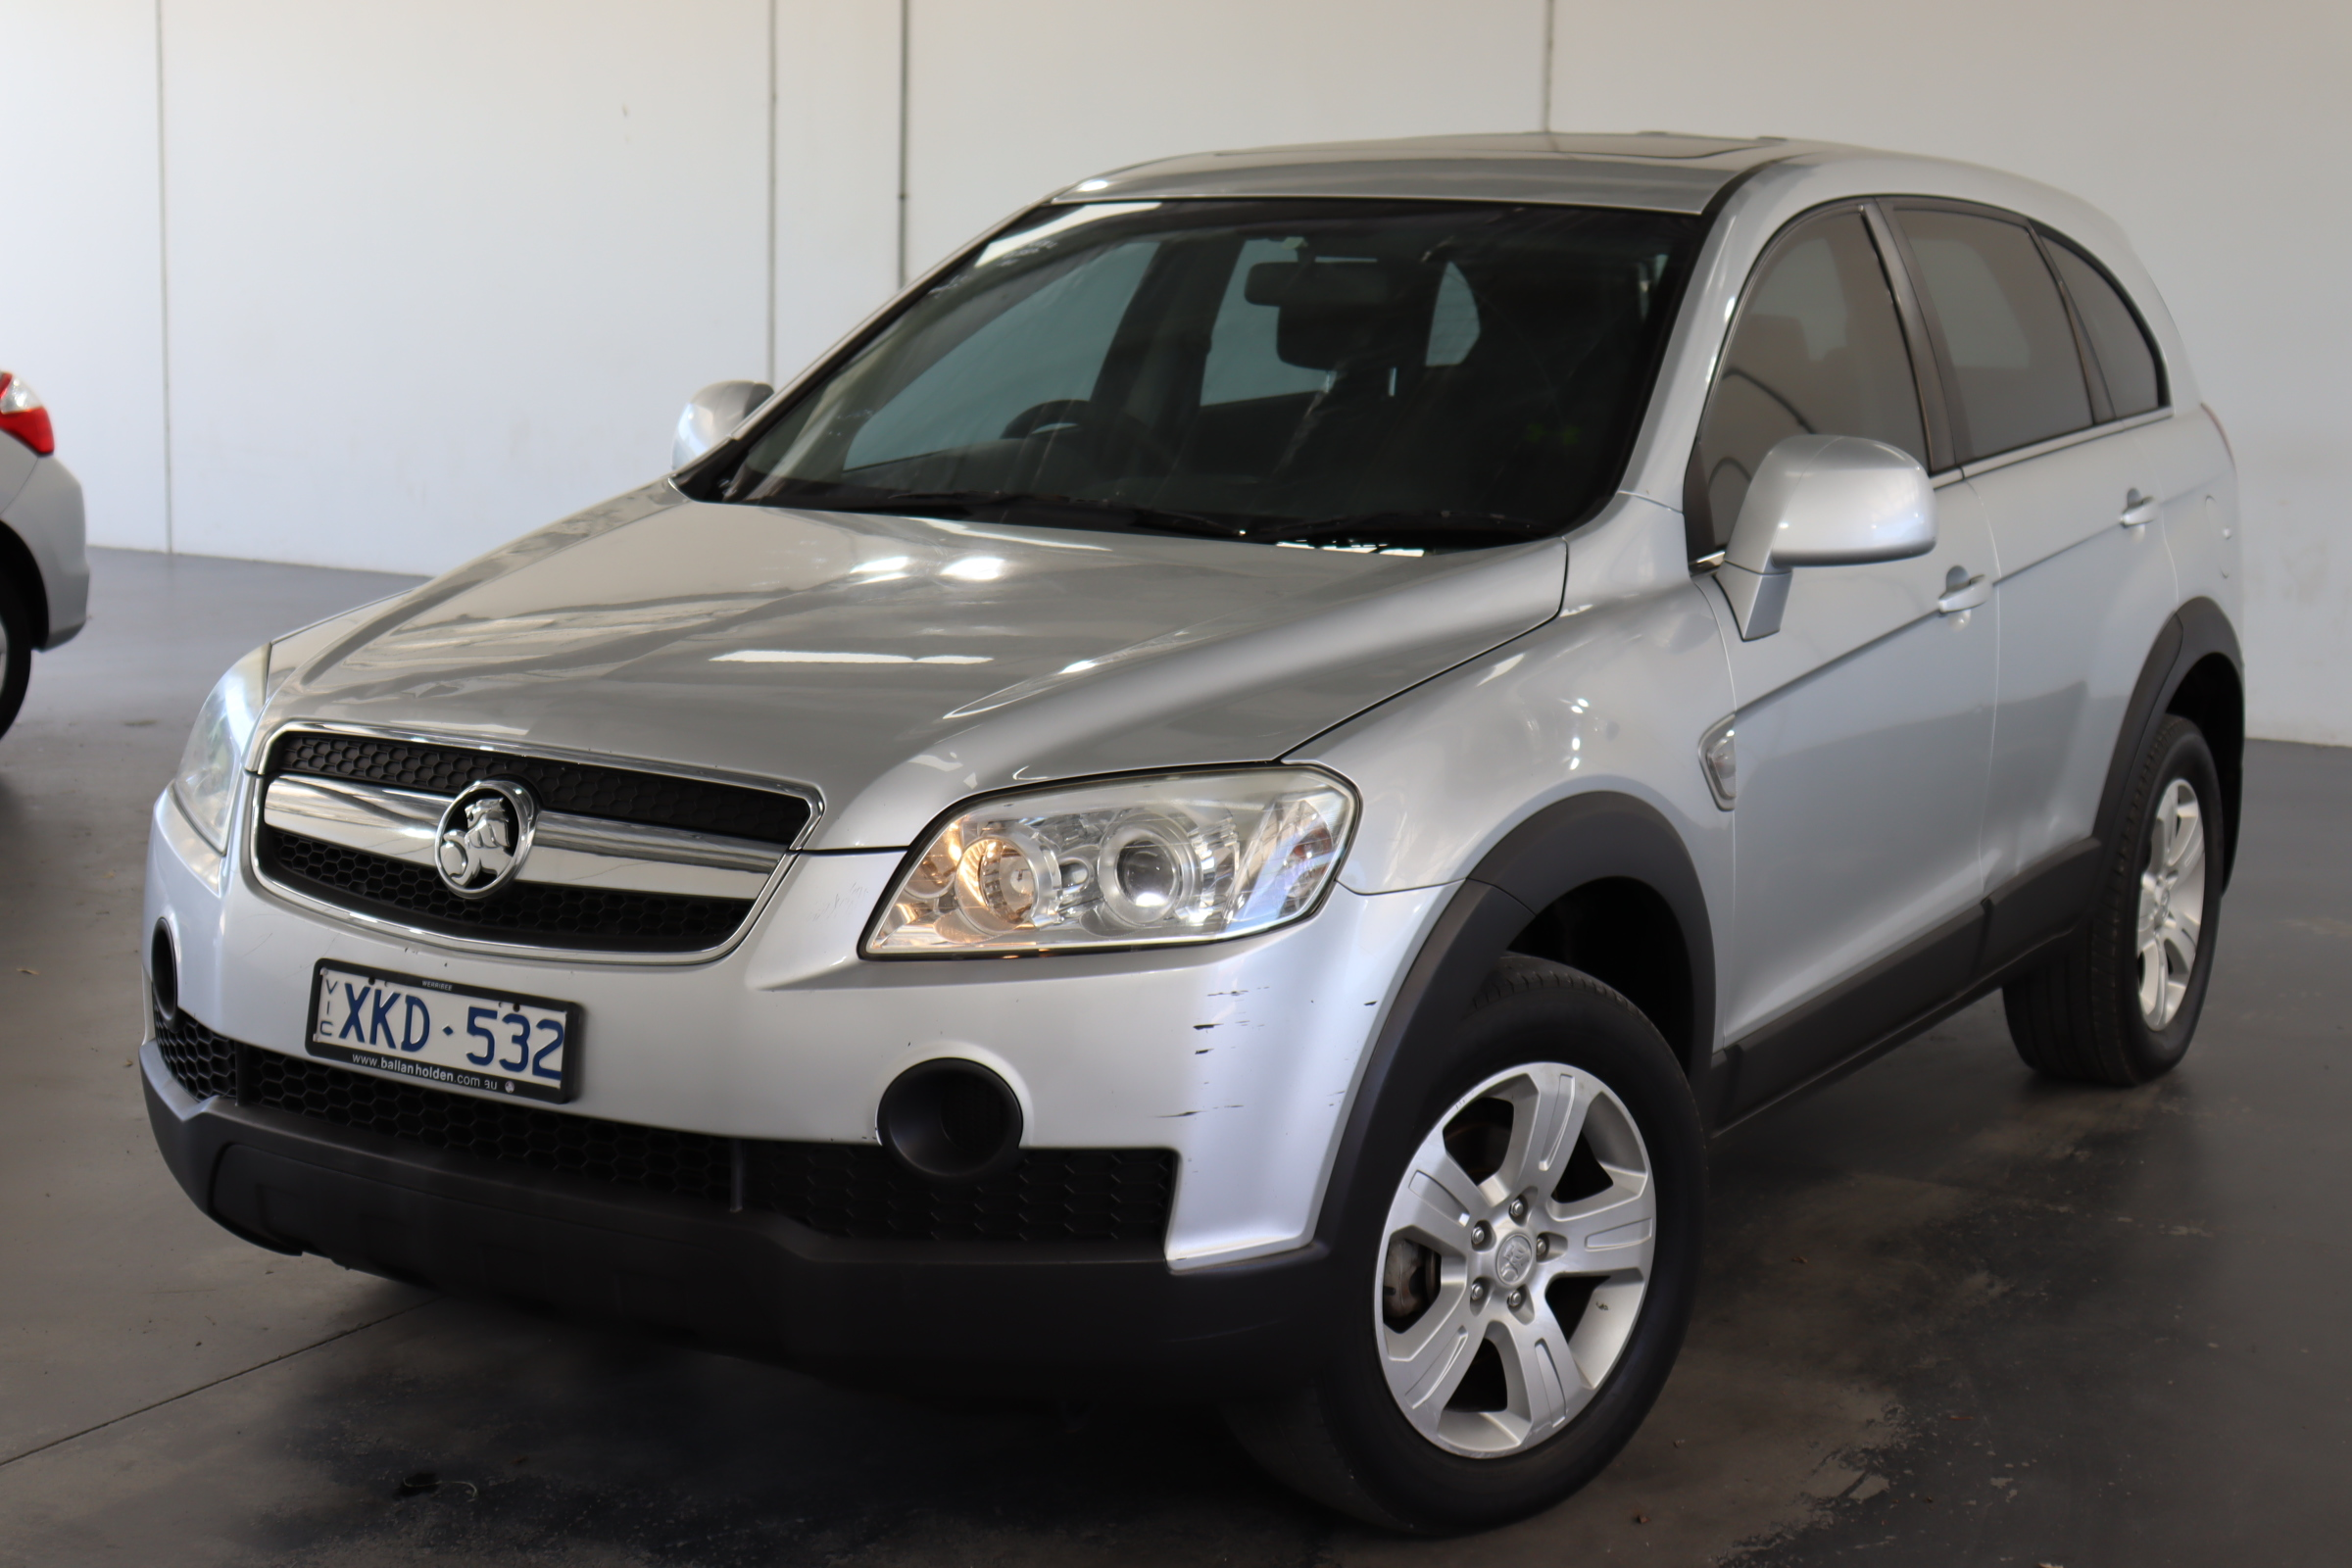 2010 Holden Captiva SX (FWD) CG Turbo Diesel Automatic 7 Seats Wagon